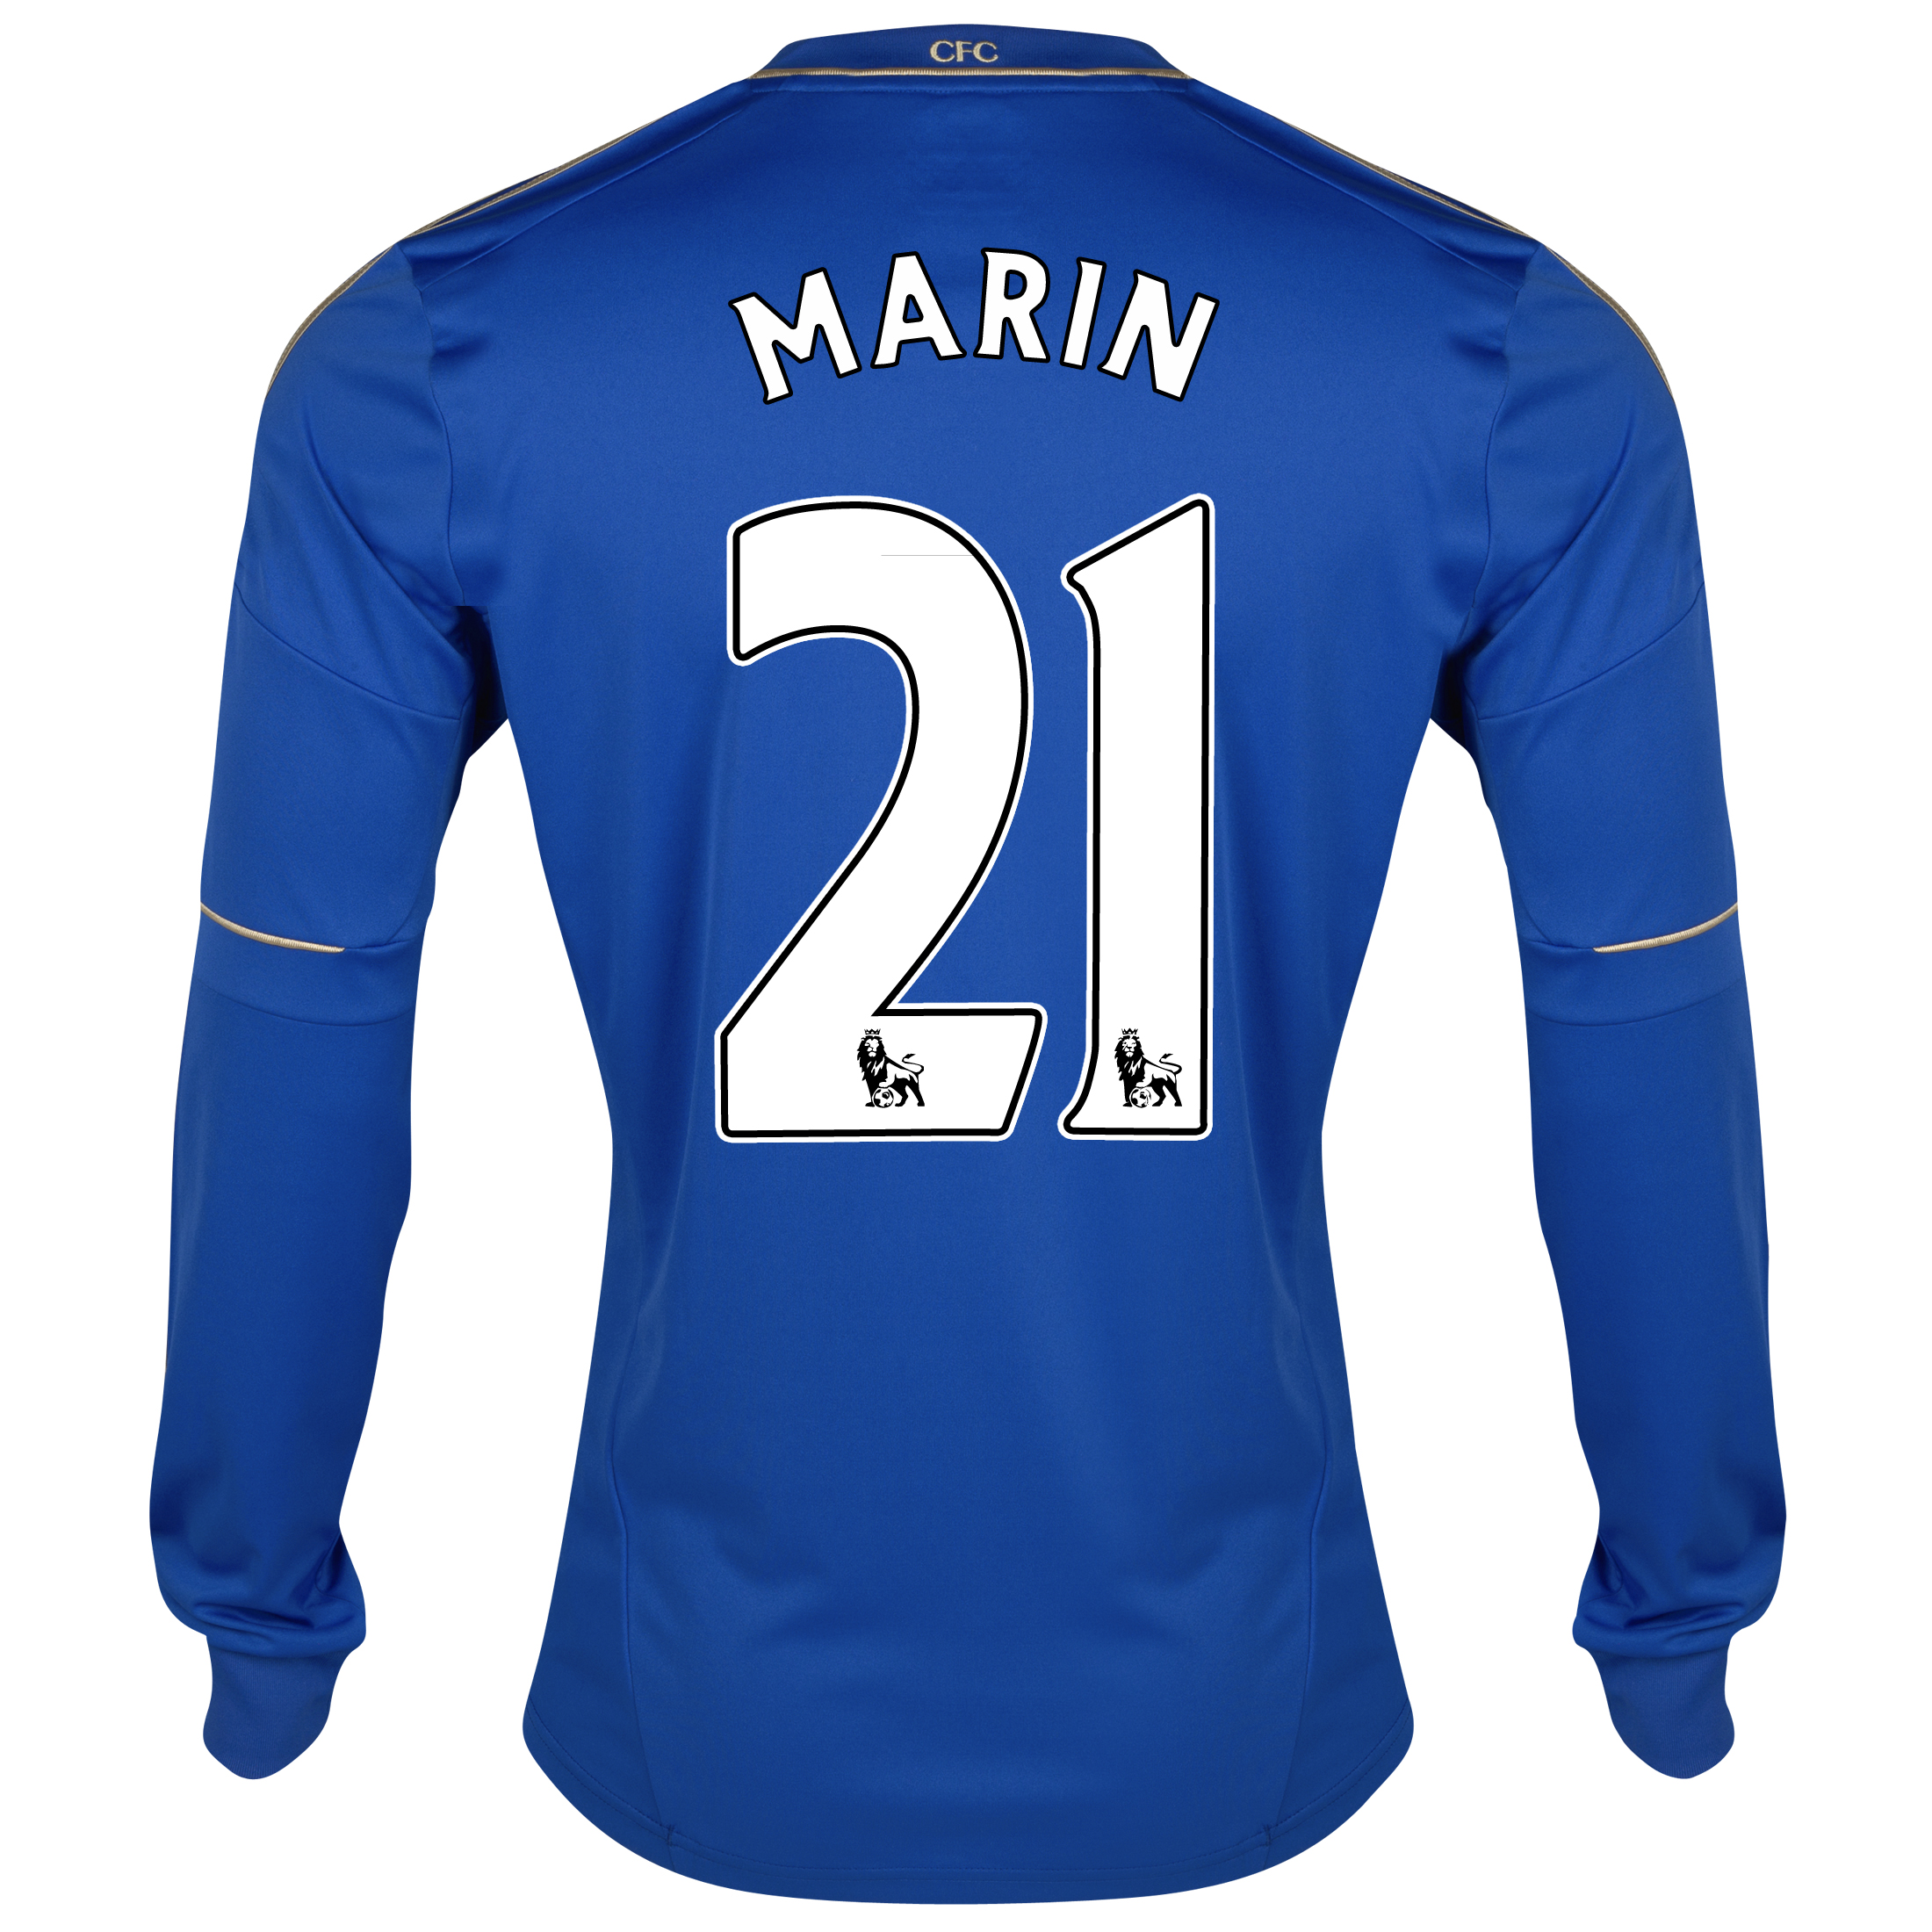 Chelsea Home Shirt 2012/13 - Long Sleeved with Marin 21 printing